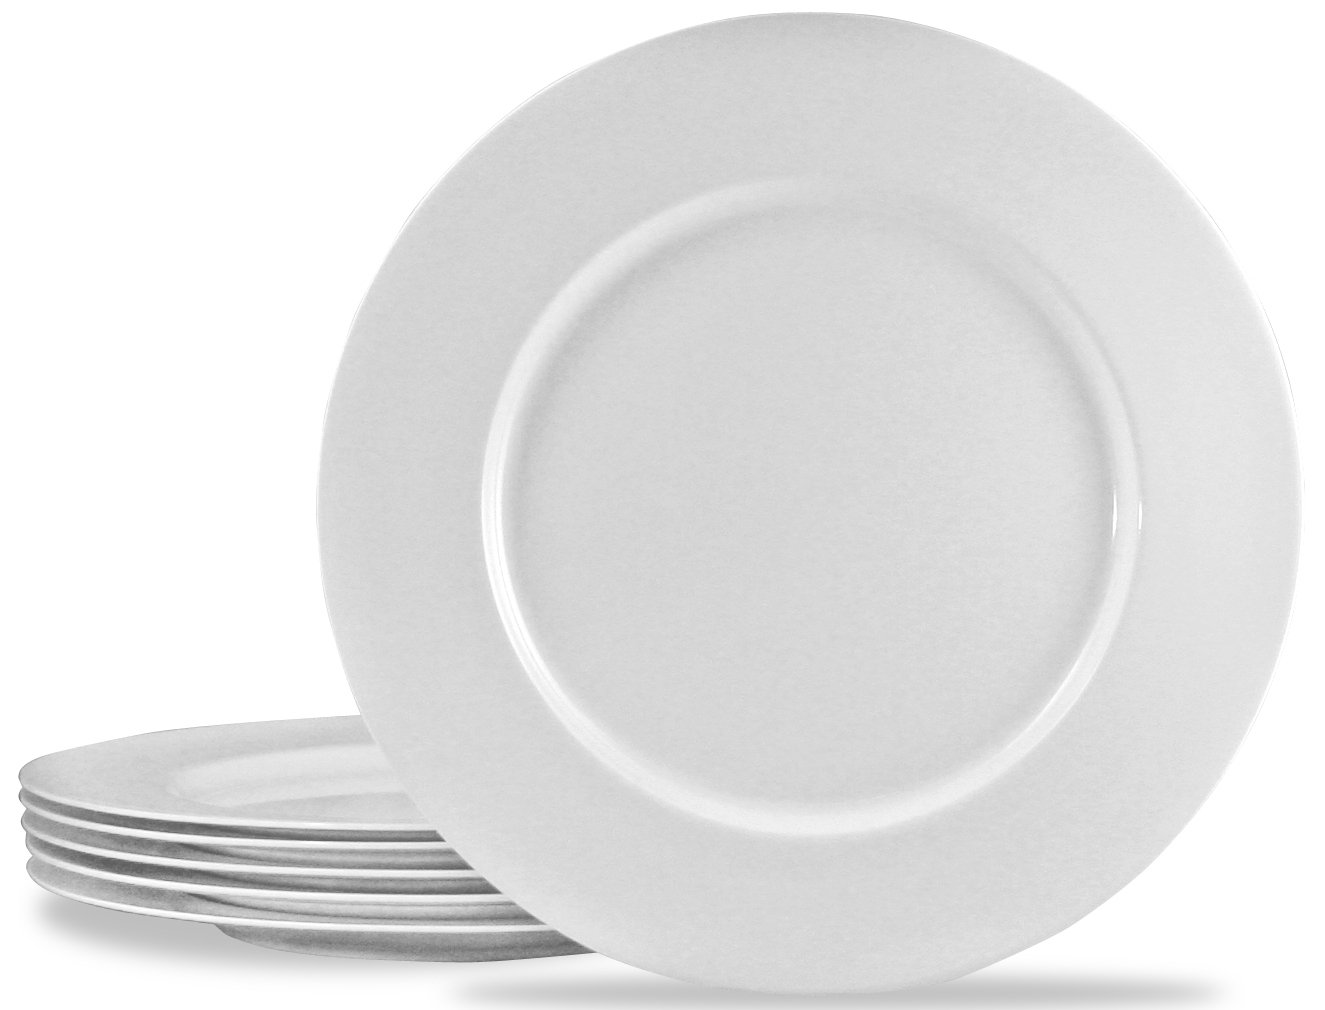 Amazon.com Calypso Basics by Reston Lloyd Melamine Dinner Plate Set of 6 White Plastic Plates Kitchen \u0026 Dining  sc 1 st  Amazon.com & Amazon.com: Calypso Basics by Reston Lloyd Melamine Dinner Plate ...